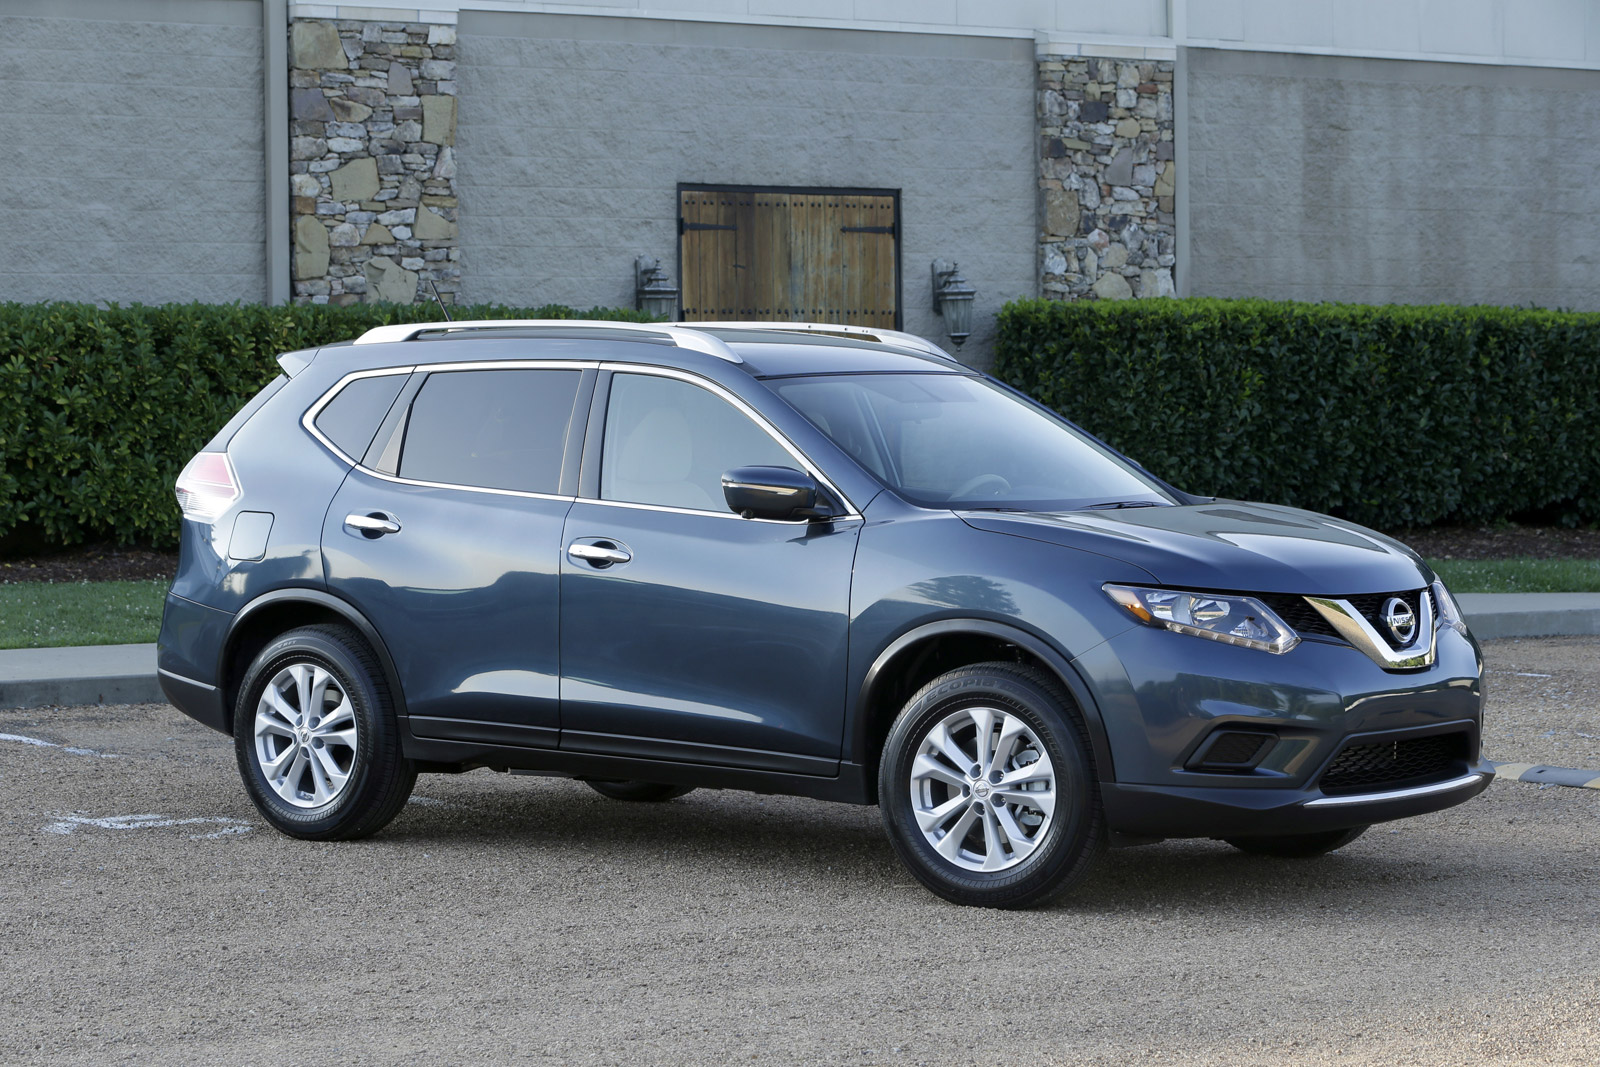 2014 Nissan Rogue Named A Top Safety Pick Plus But Not